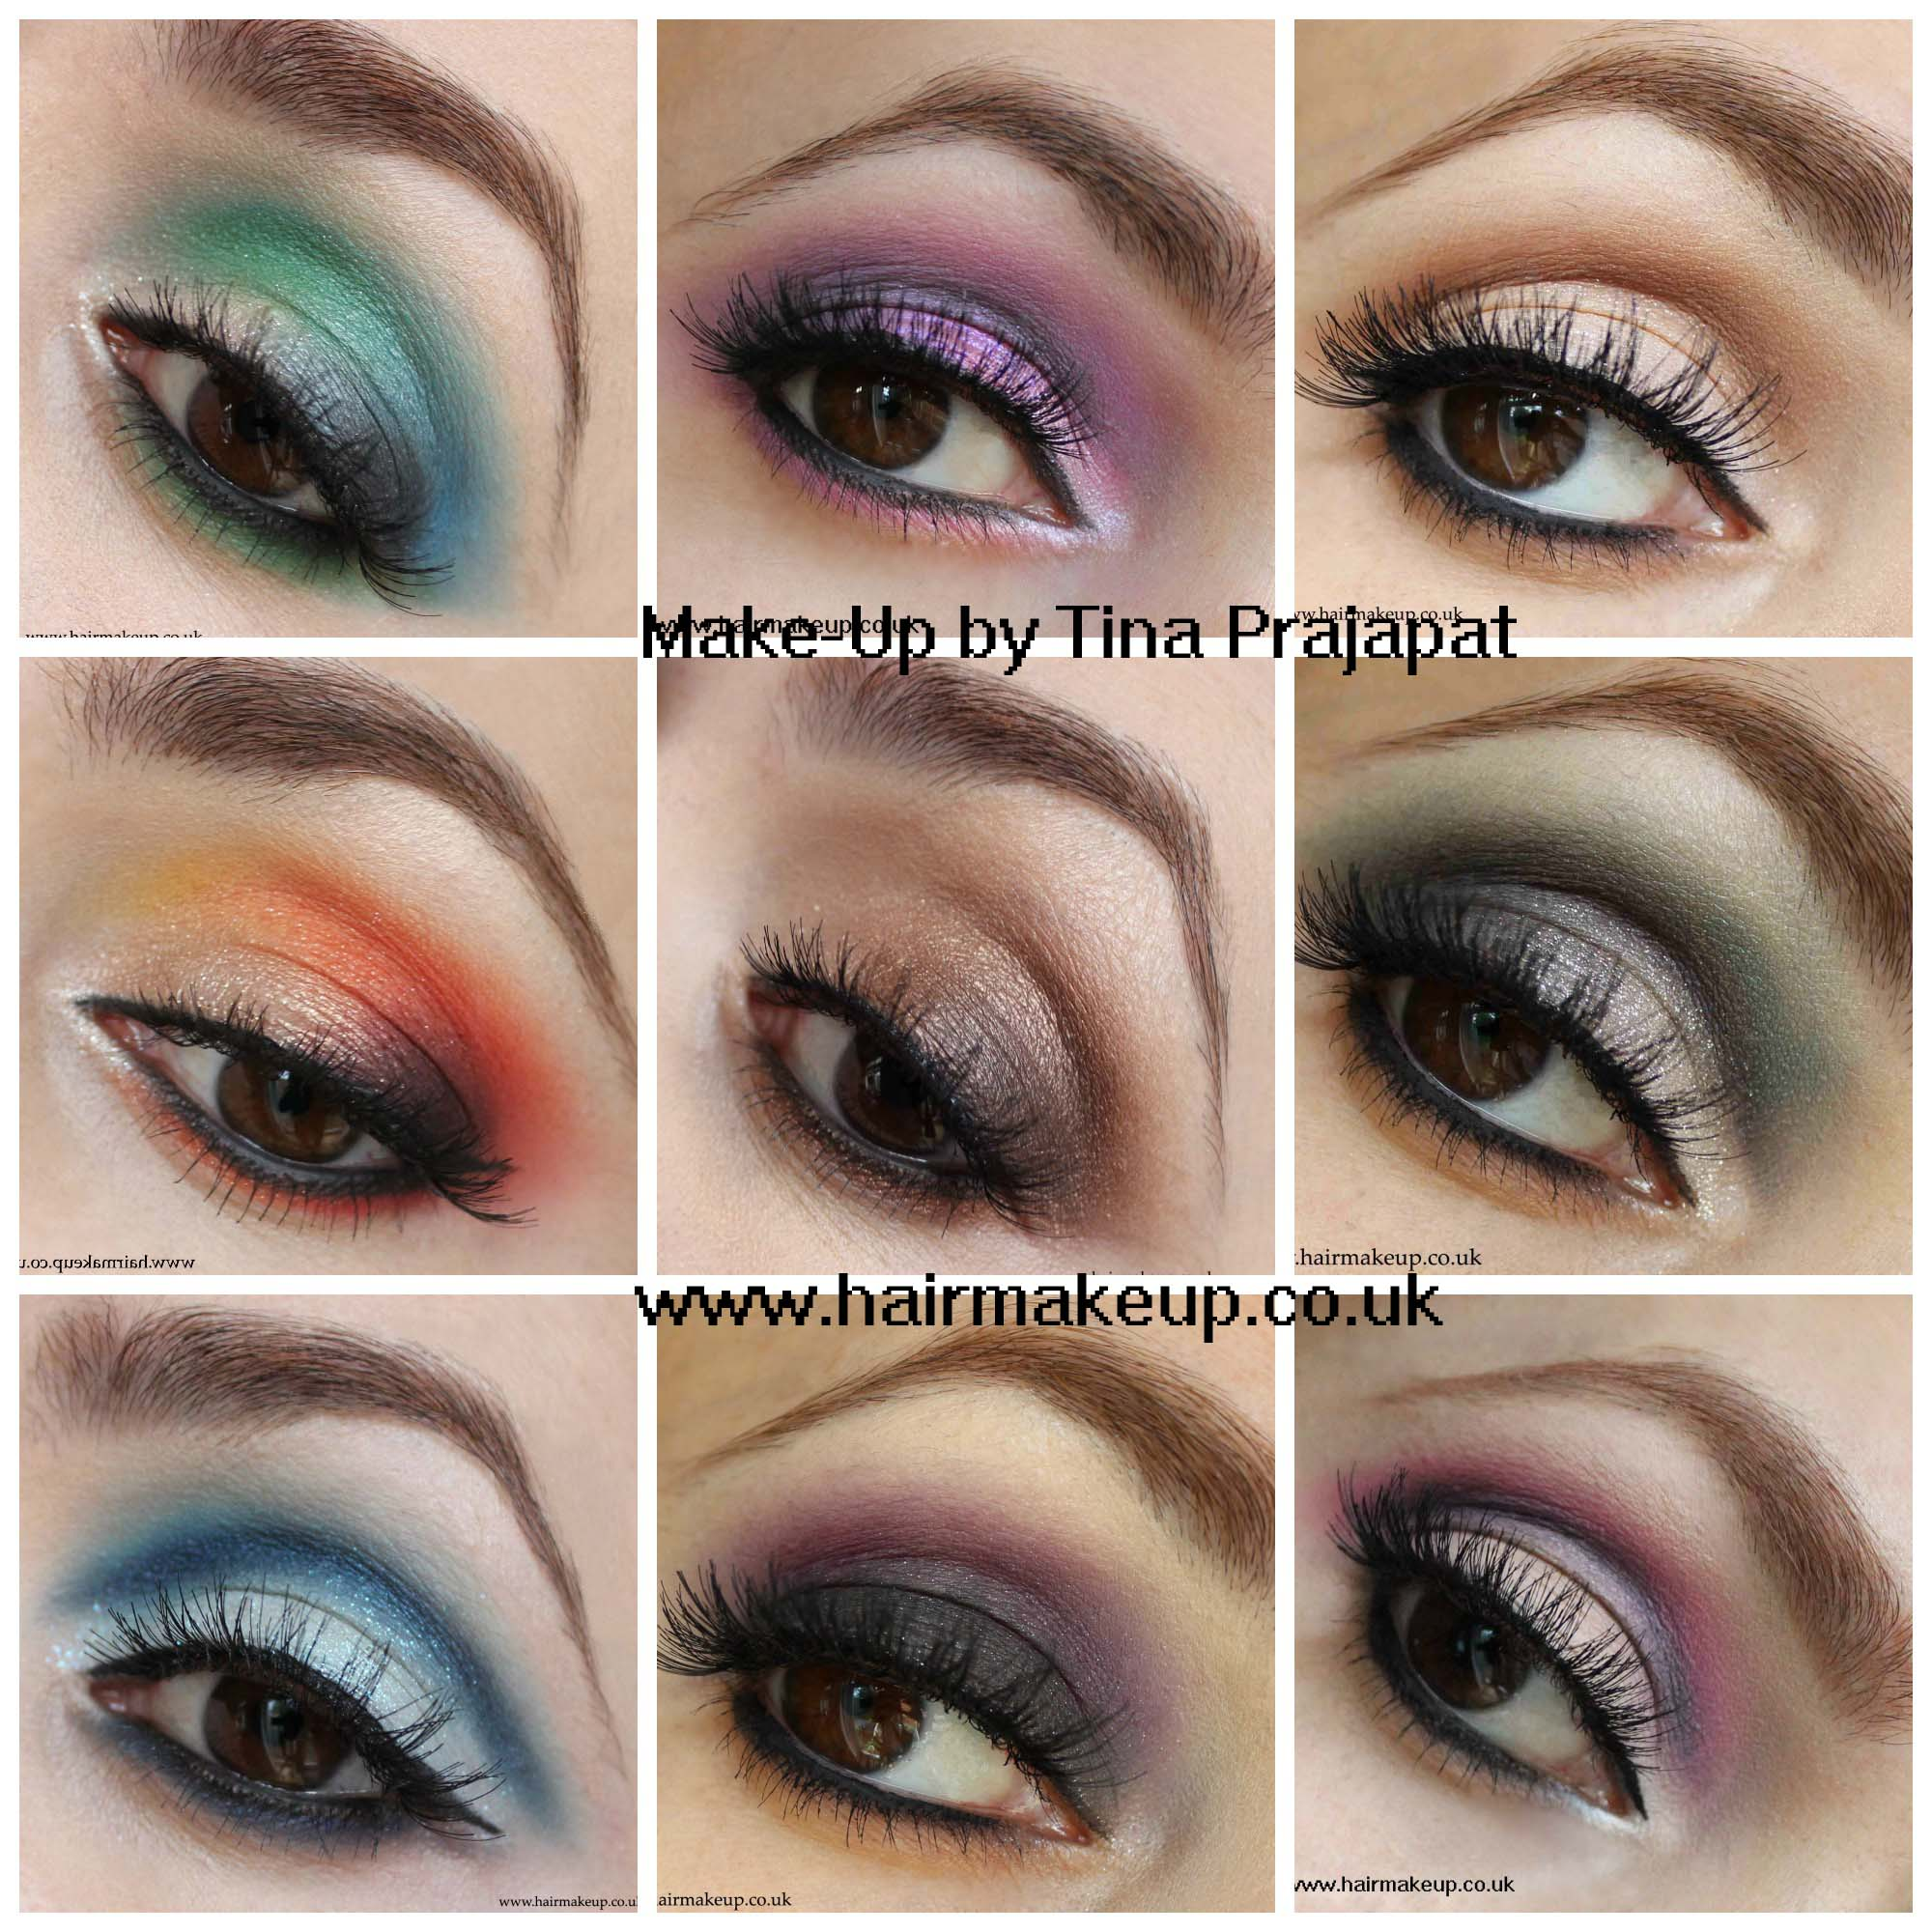 Learn How To Apply Your Own Make Up Tina Prajapat